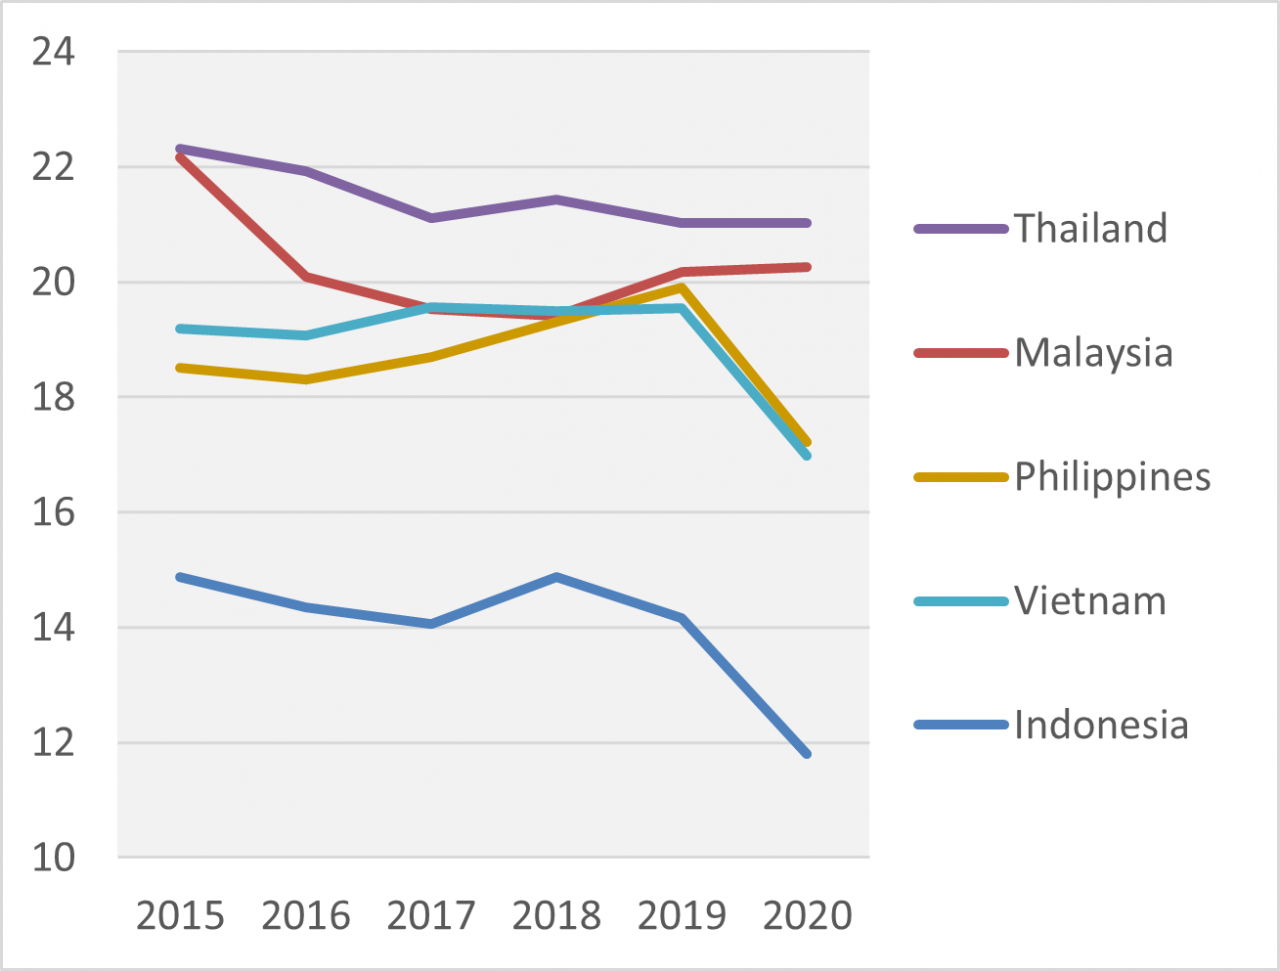 'The New Fiscal Consensus' As Per Blanchard & Subramanian Interpreted for Southeast Asia